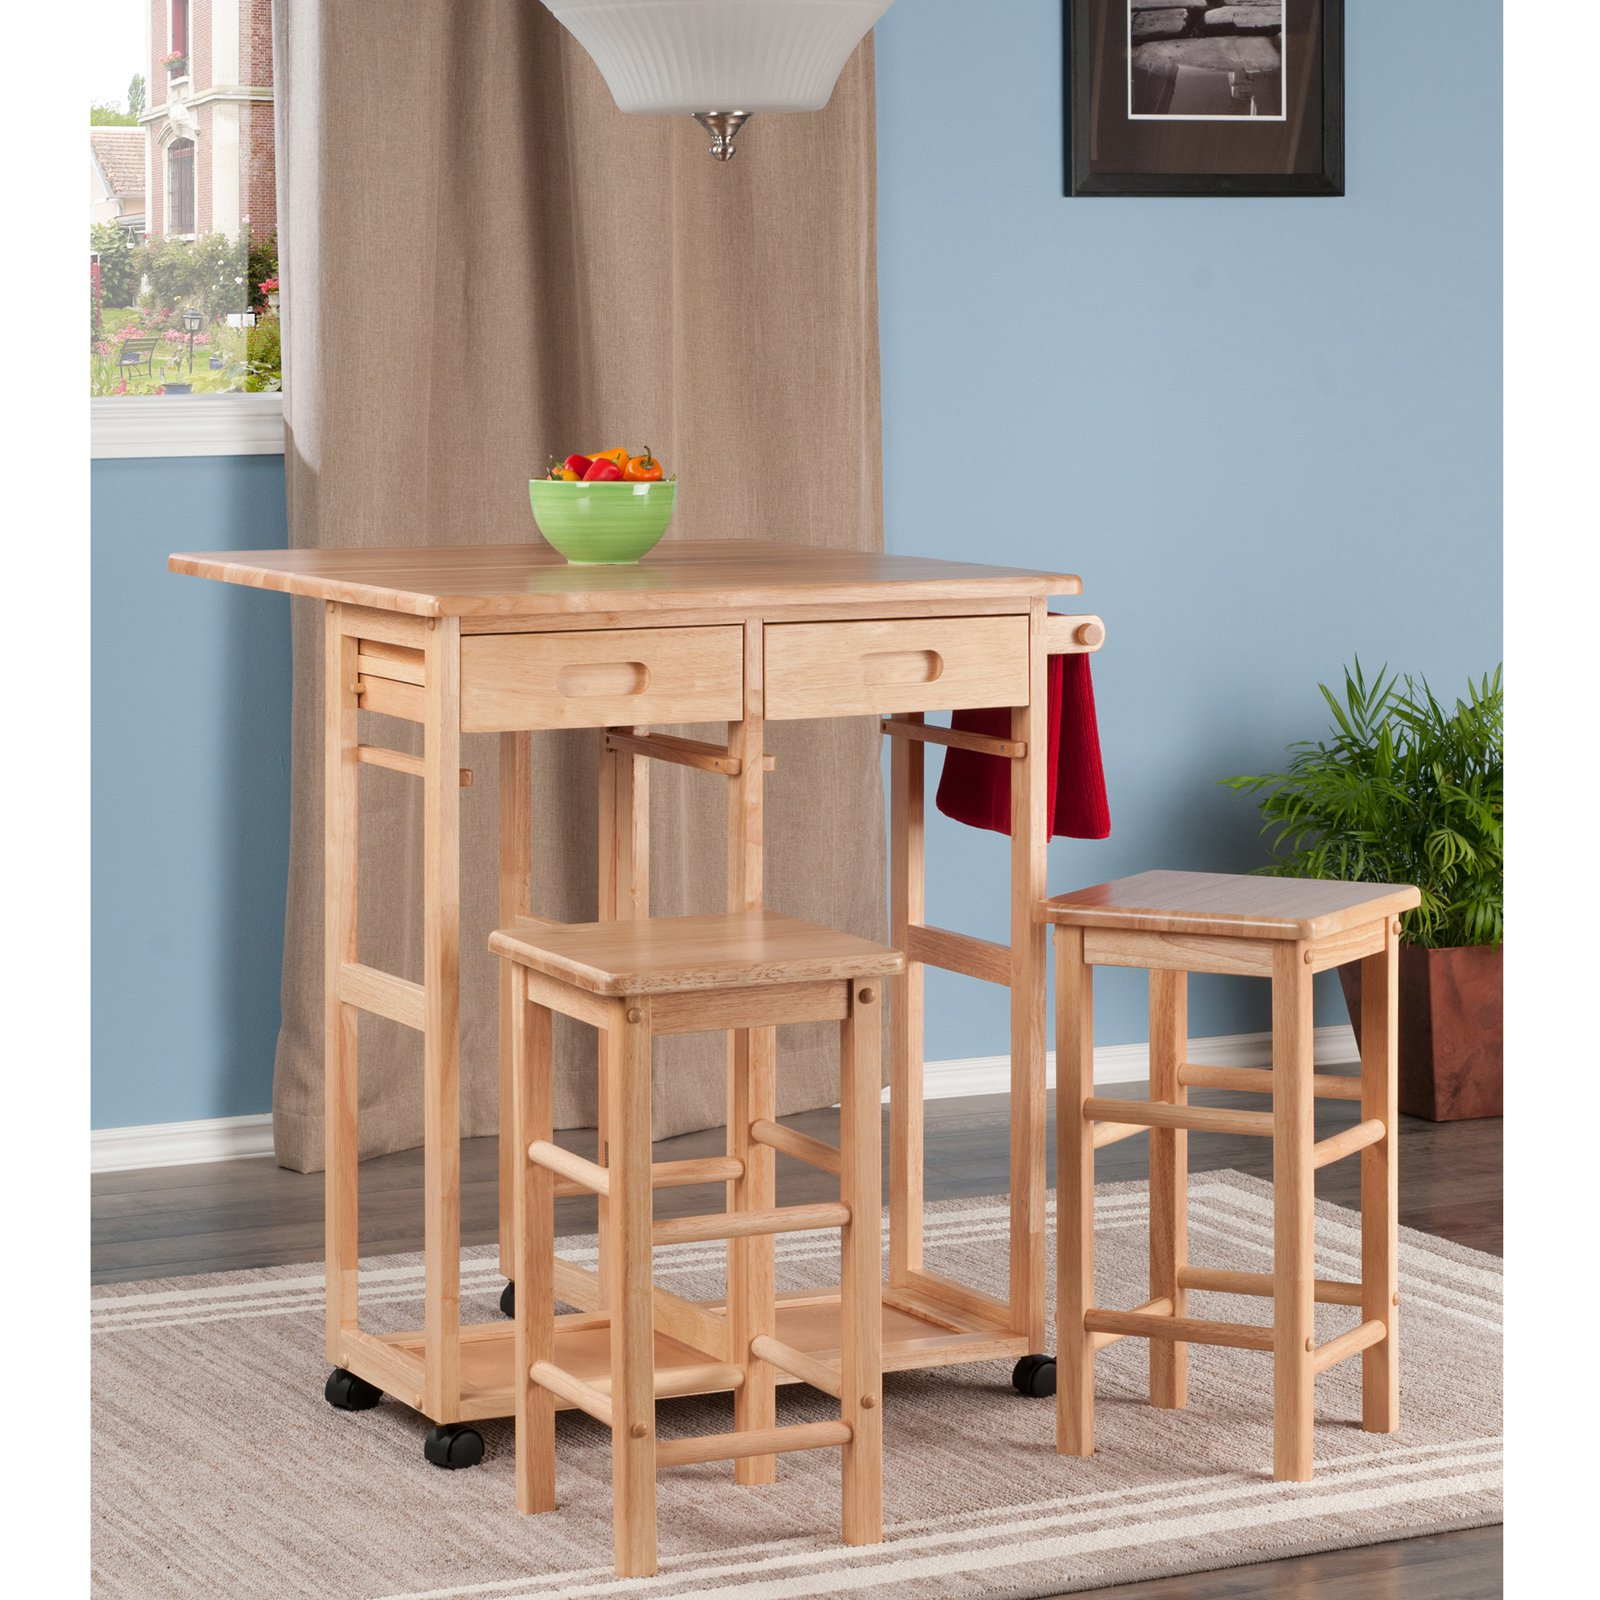 Winsome Wood Suzanne 3-Piece Space Saver Set, Multiple Finishes